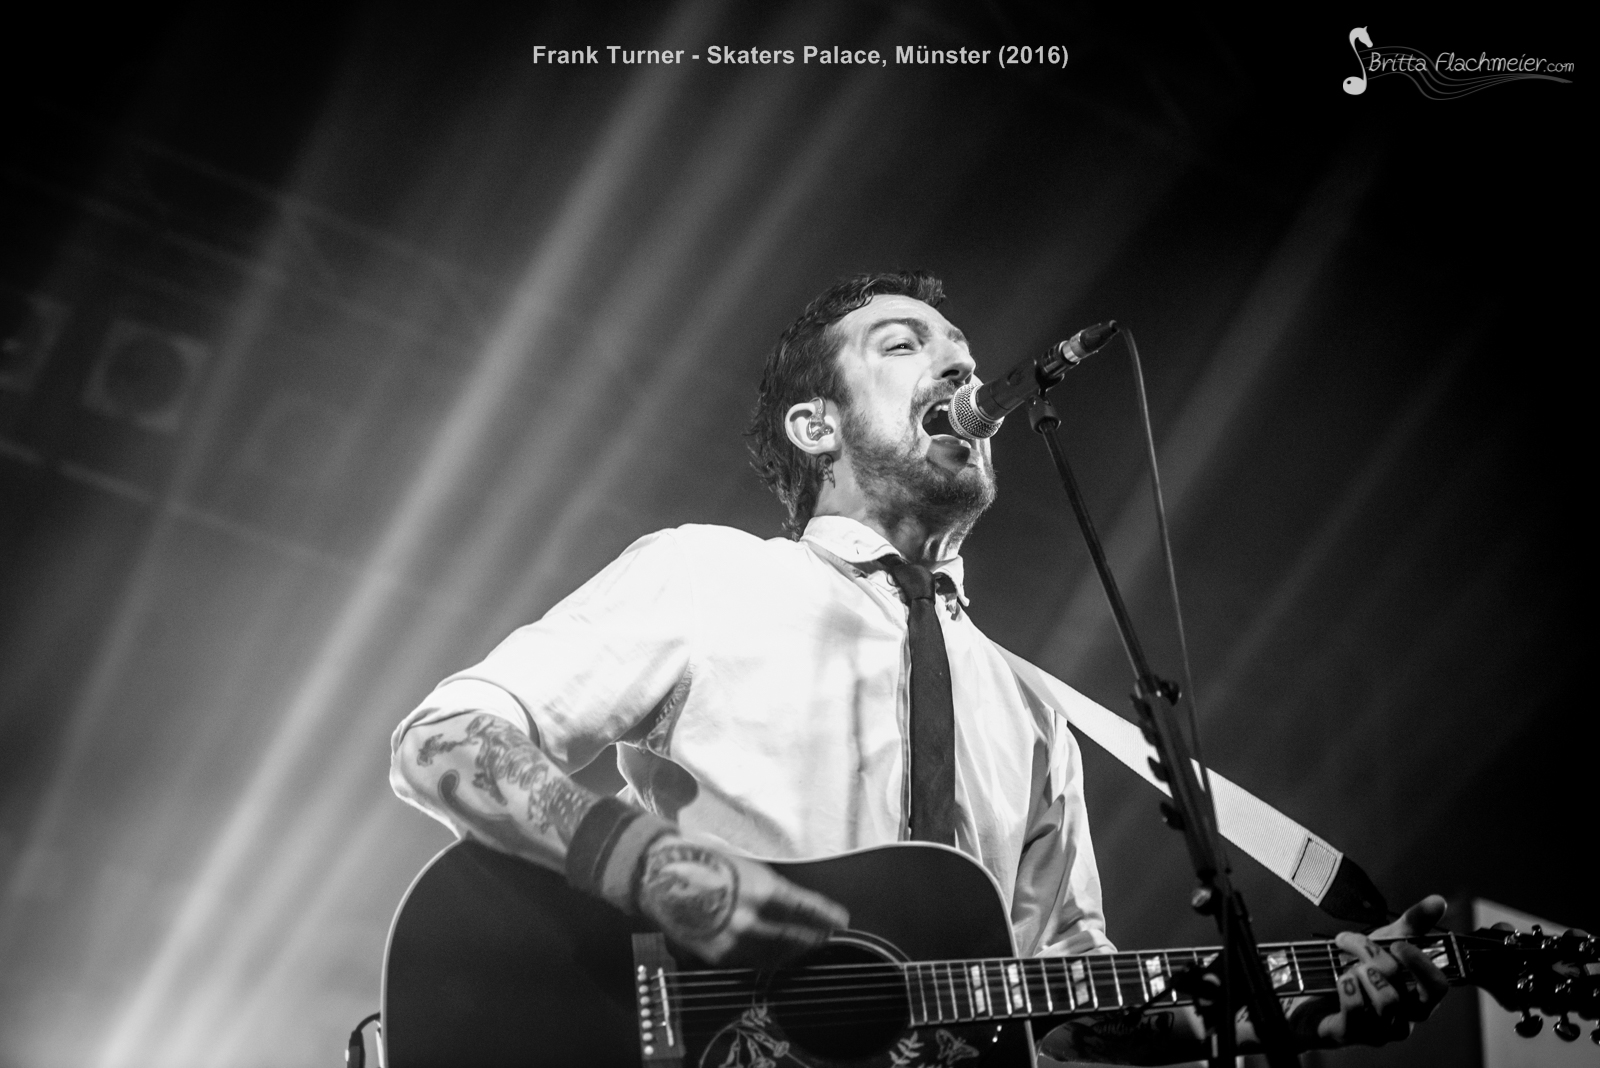 Frank Turner -11.01.2016 - Skaters Palace, Münster